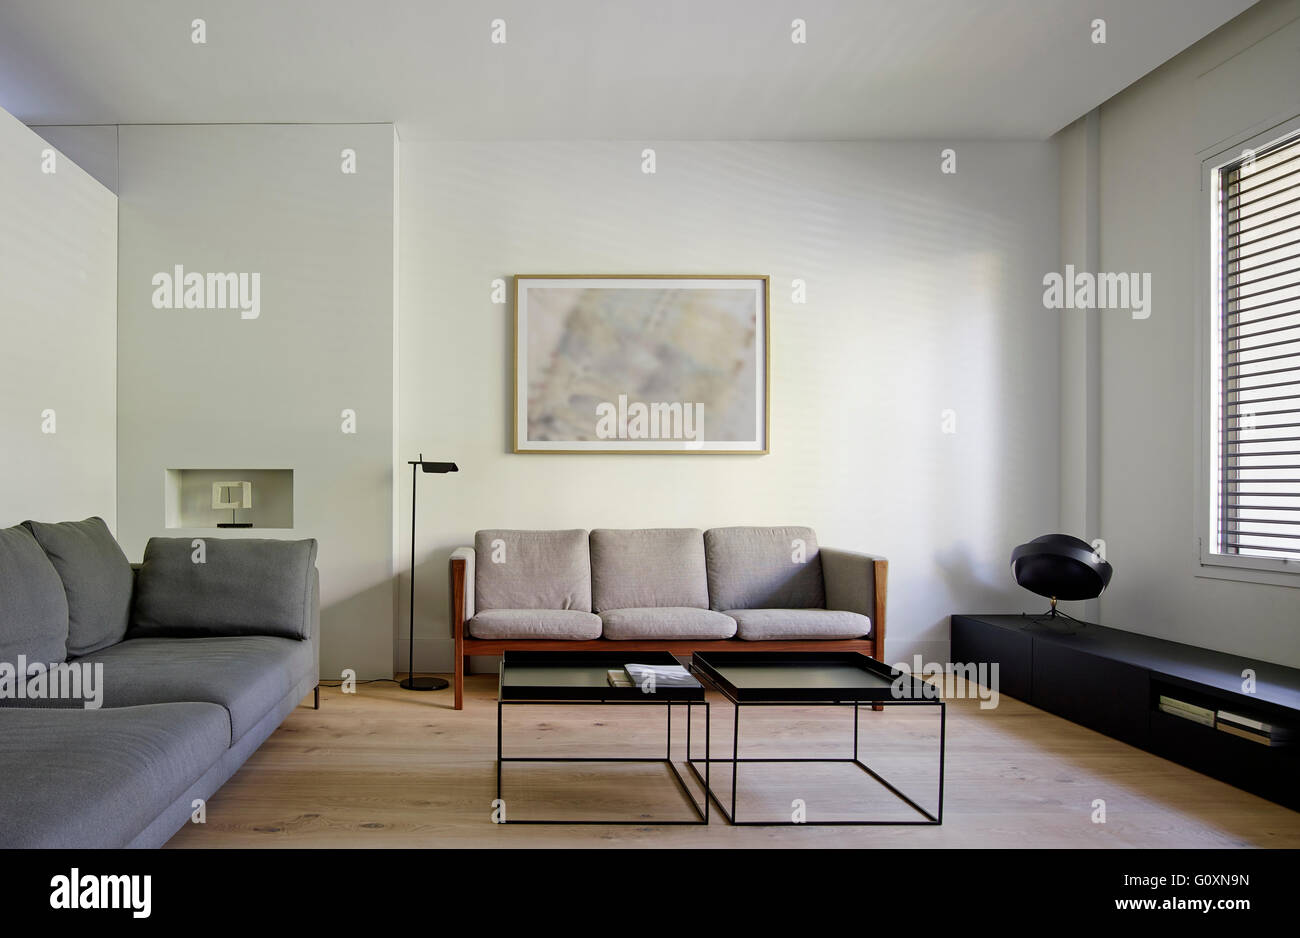 Spacious Contemporary Living Room With Grey Modern Sofas And Painting On  Wall.   Stock Image